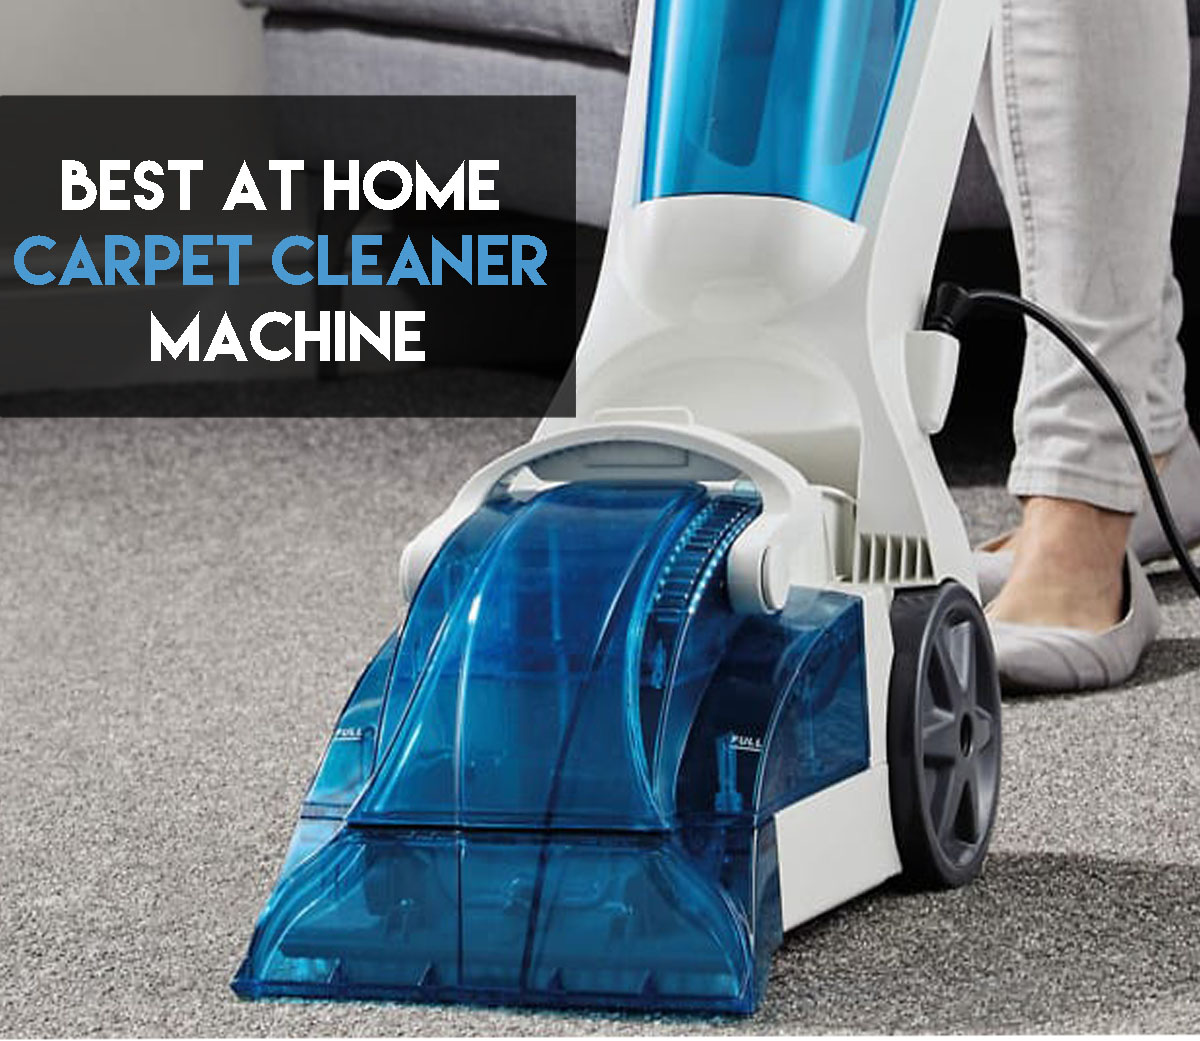 Best At Home Carpet Cleaner Machines